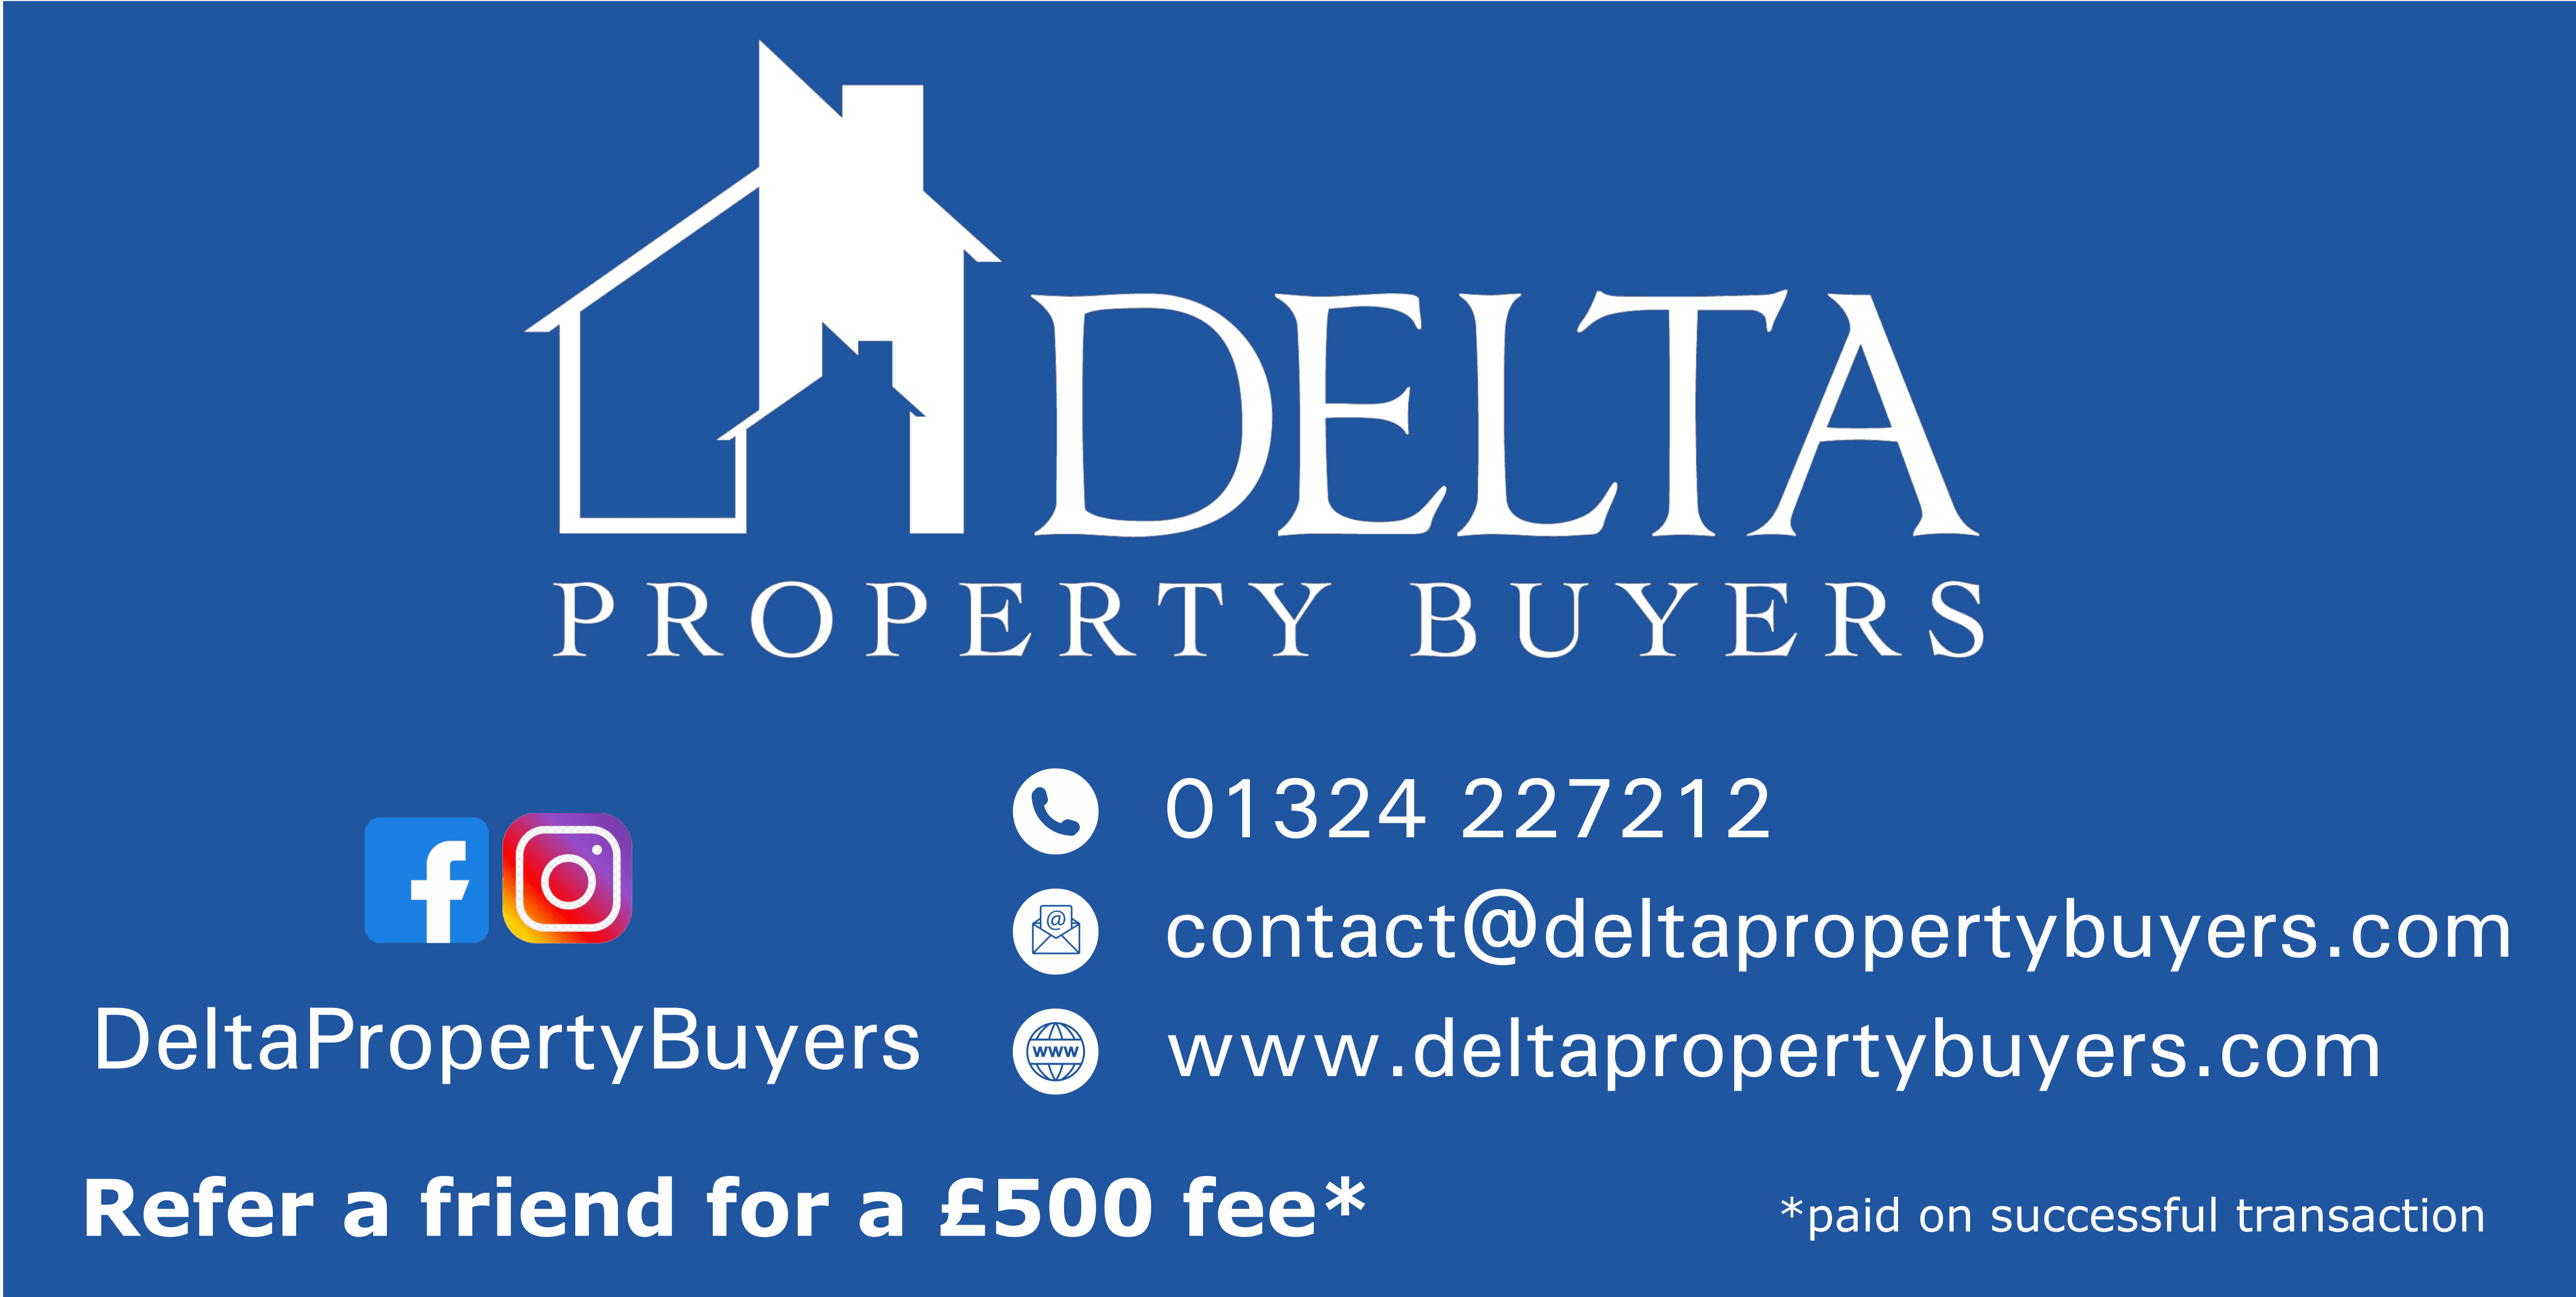 Delta Property Buyers Board